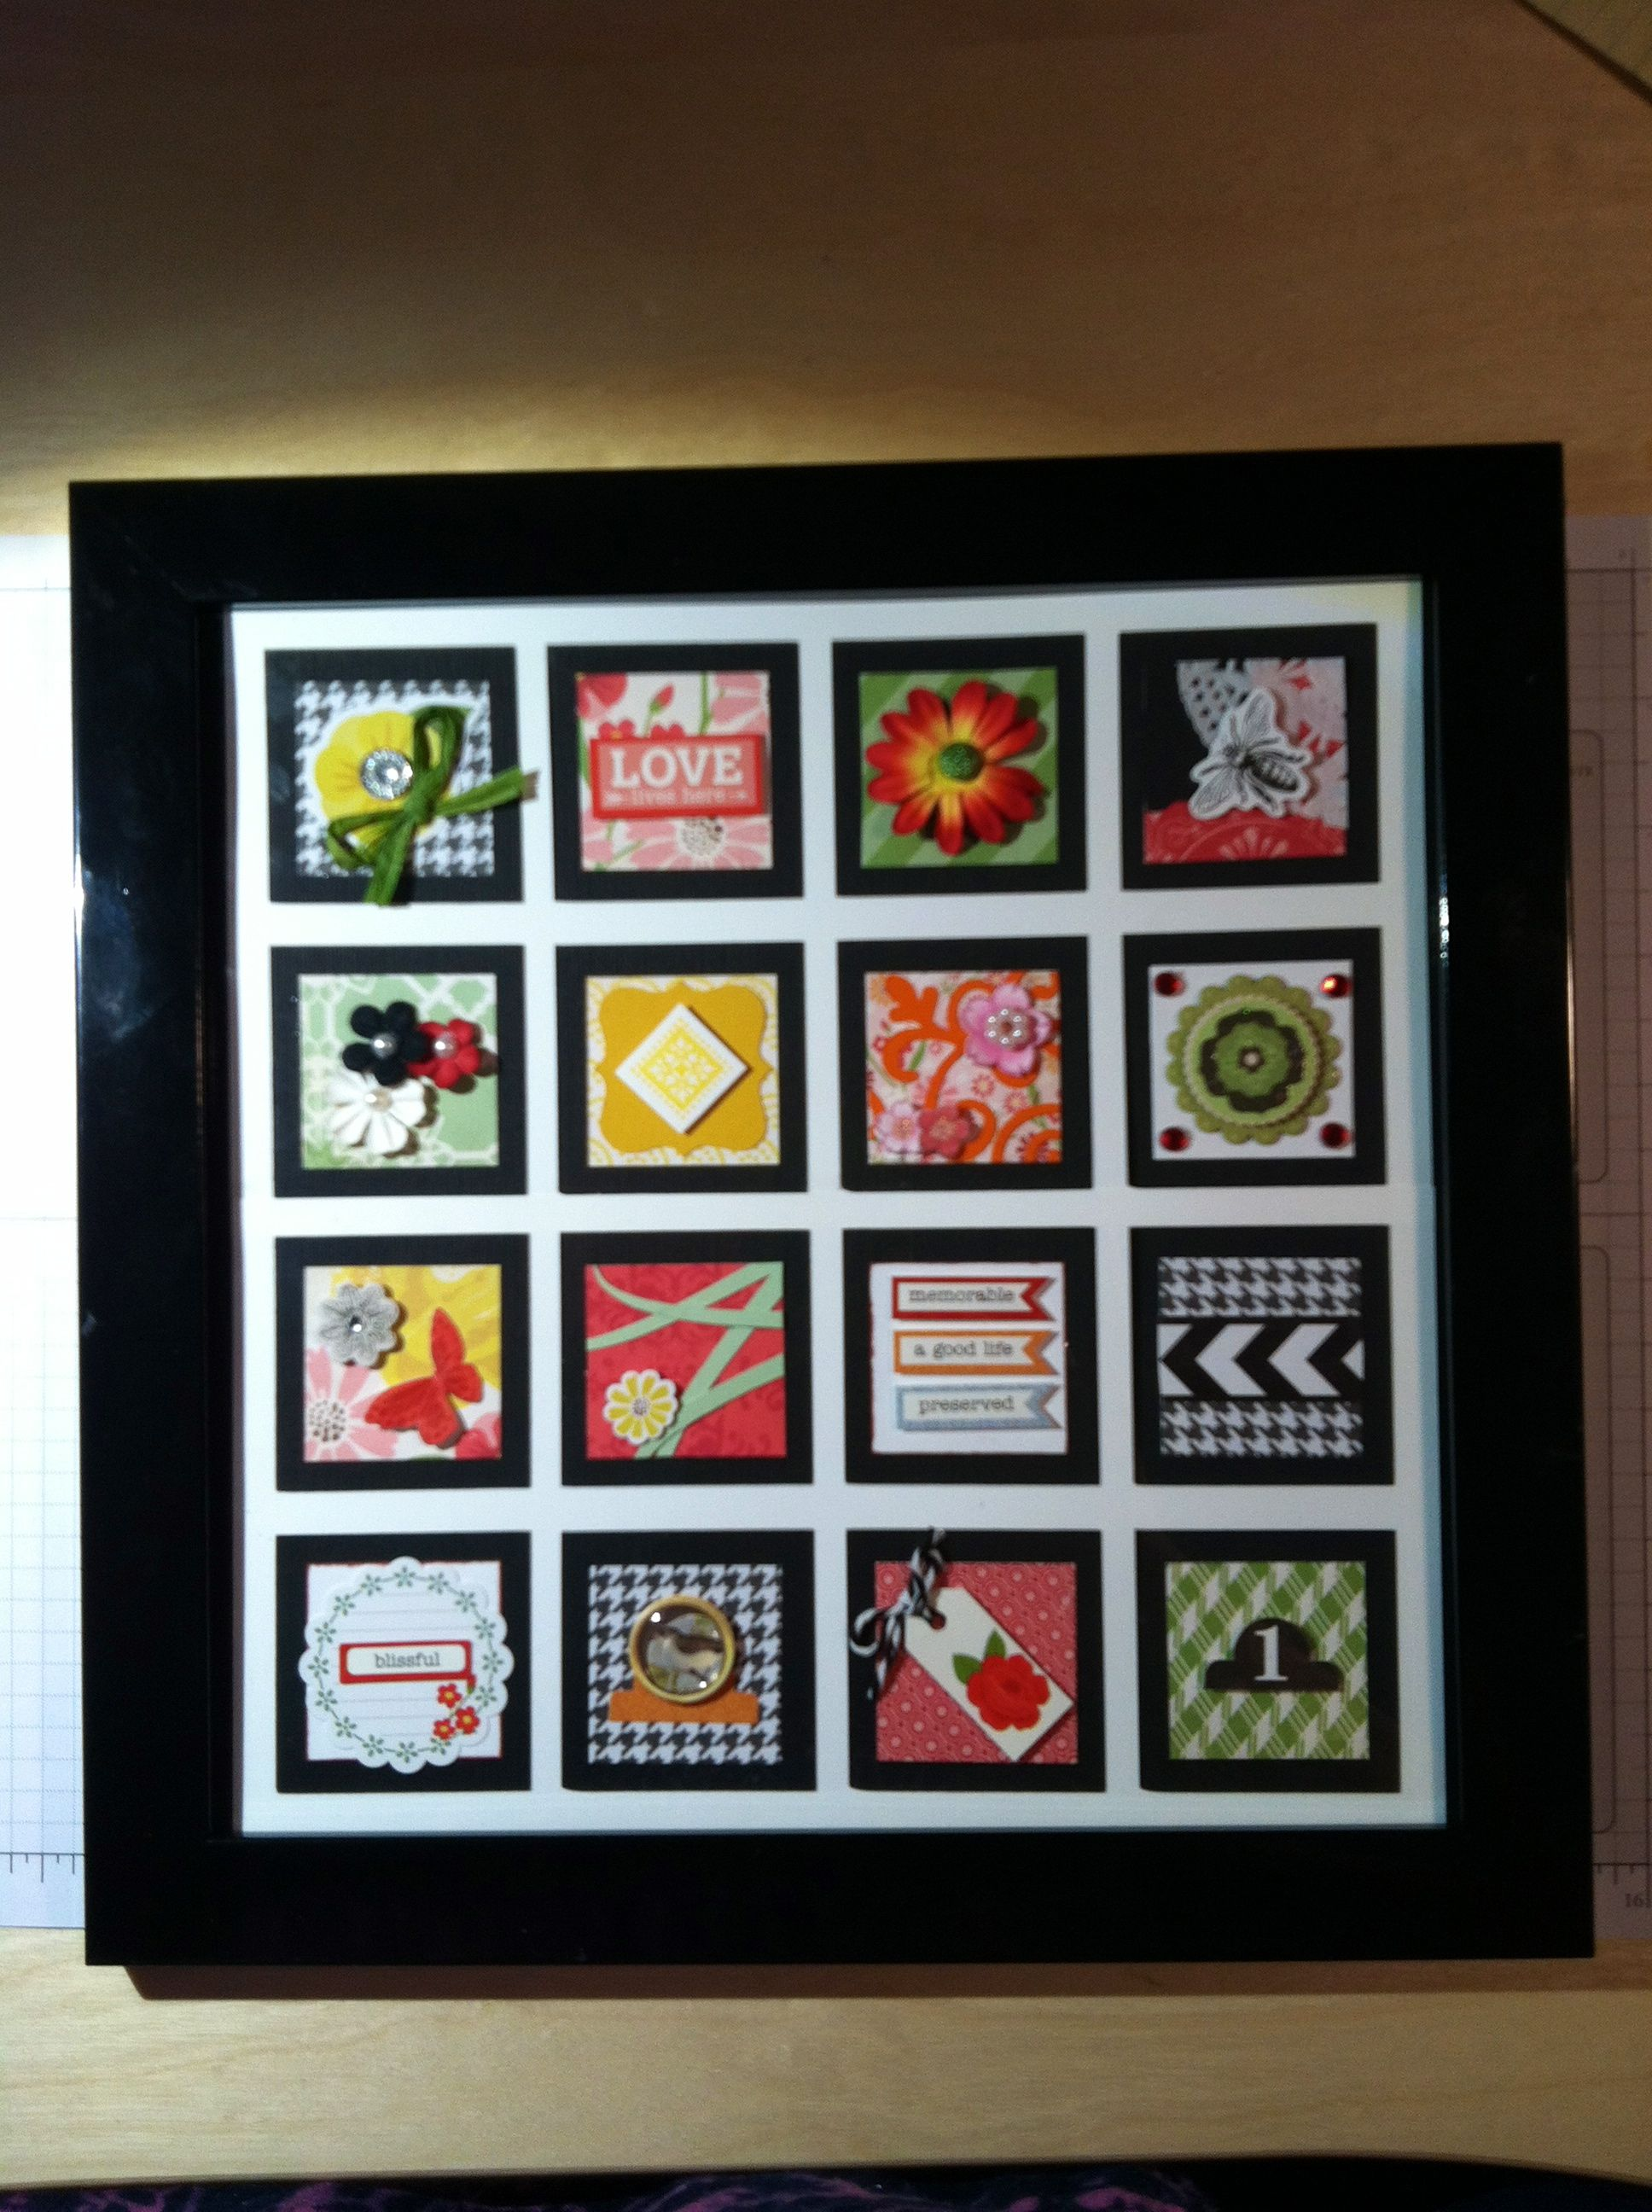 I Just Finished Making Another Inchie Frame Wall Piece This One Has 16 Individually Designed 1 1 2 Inch Square Paper Crafts Paper Craft Making Frames On Wall